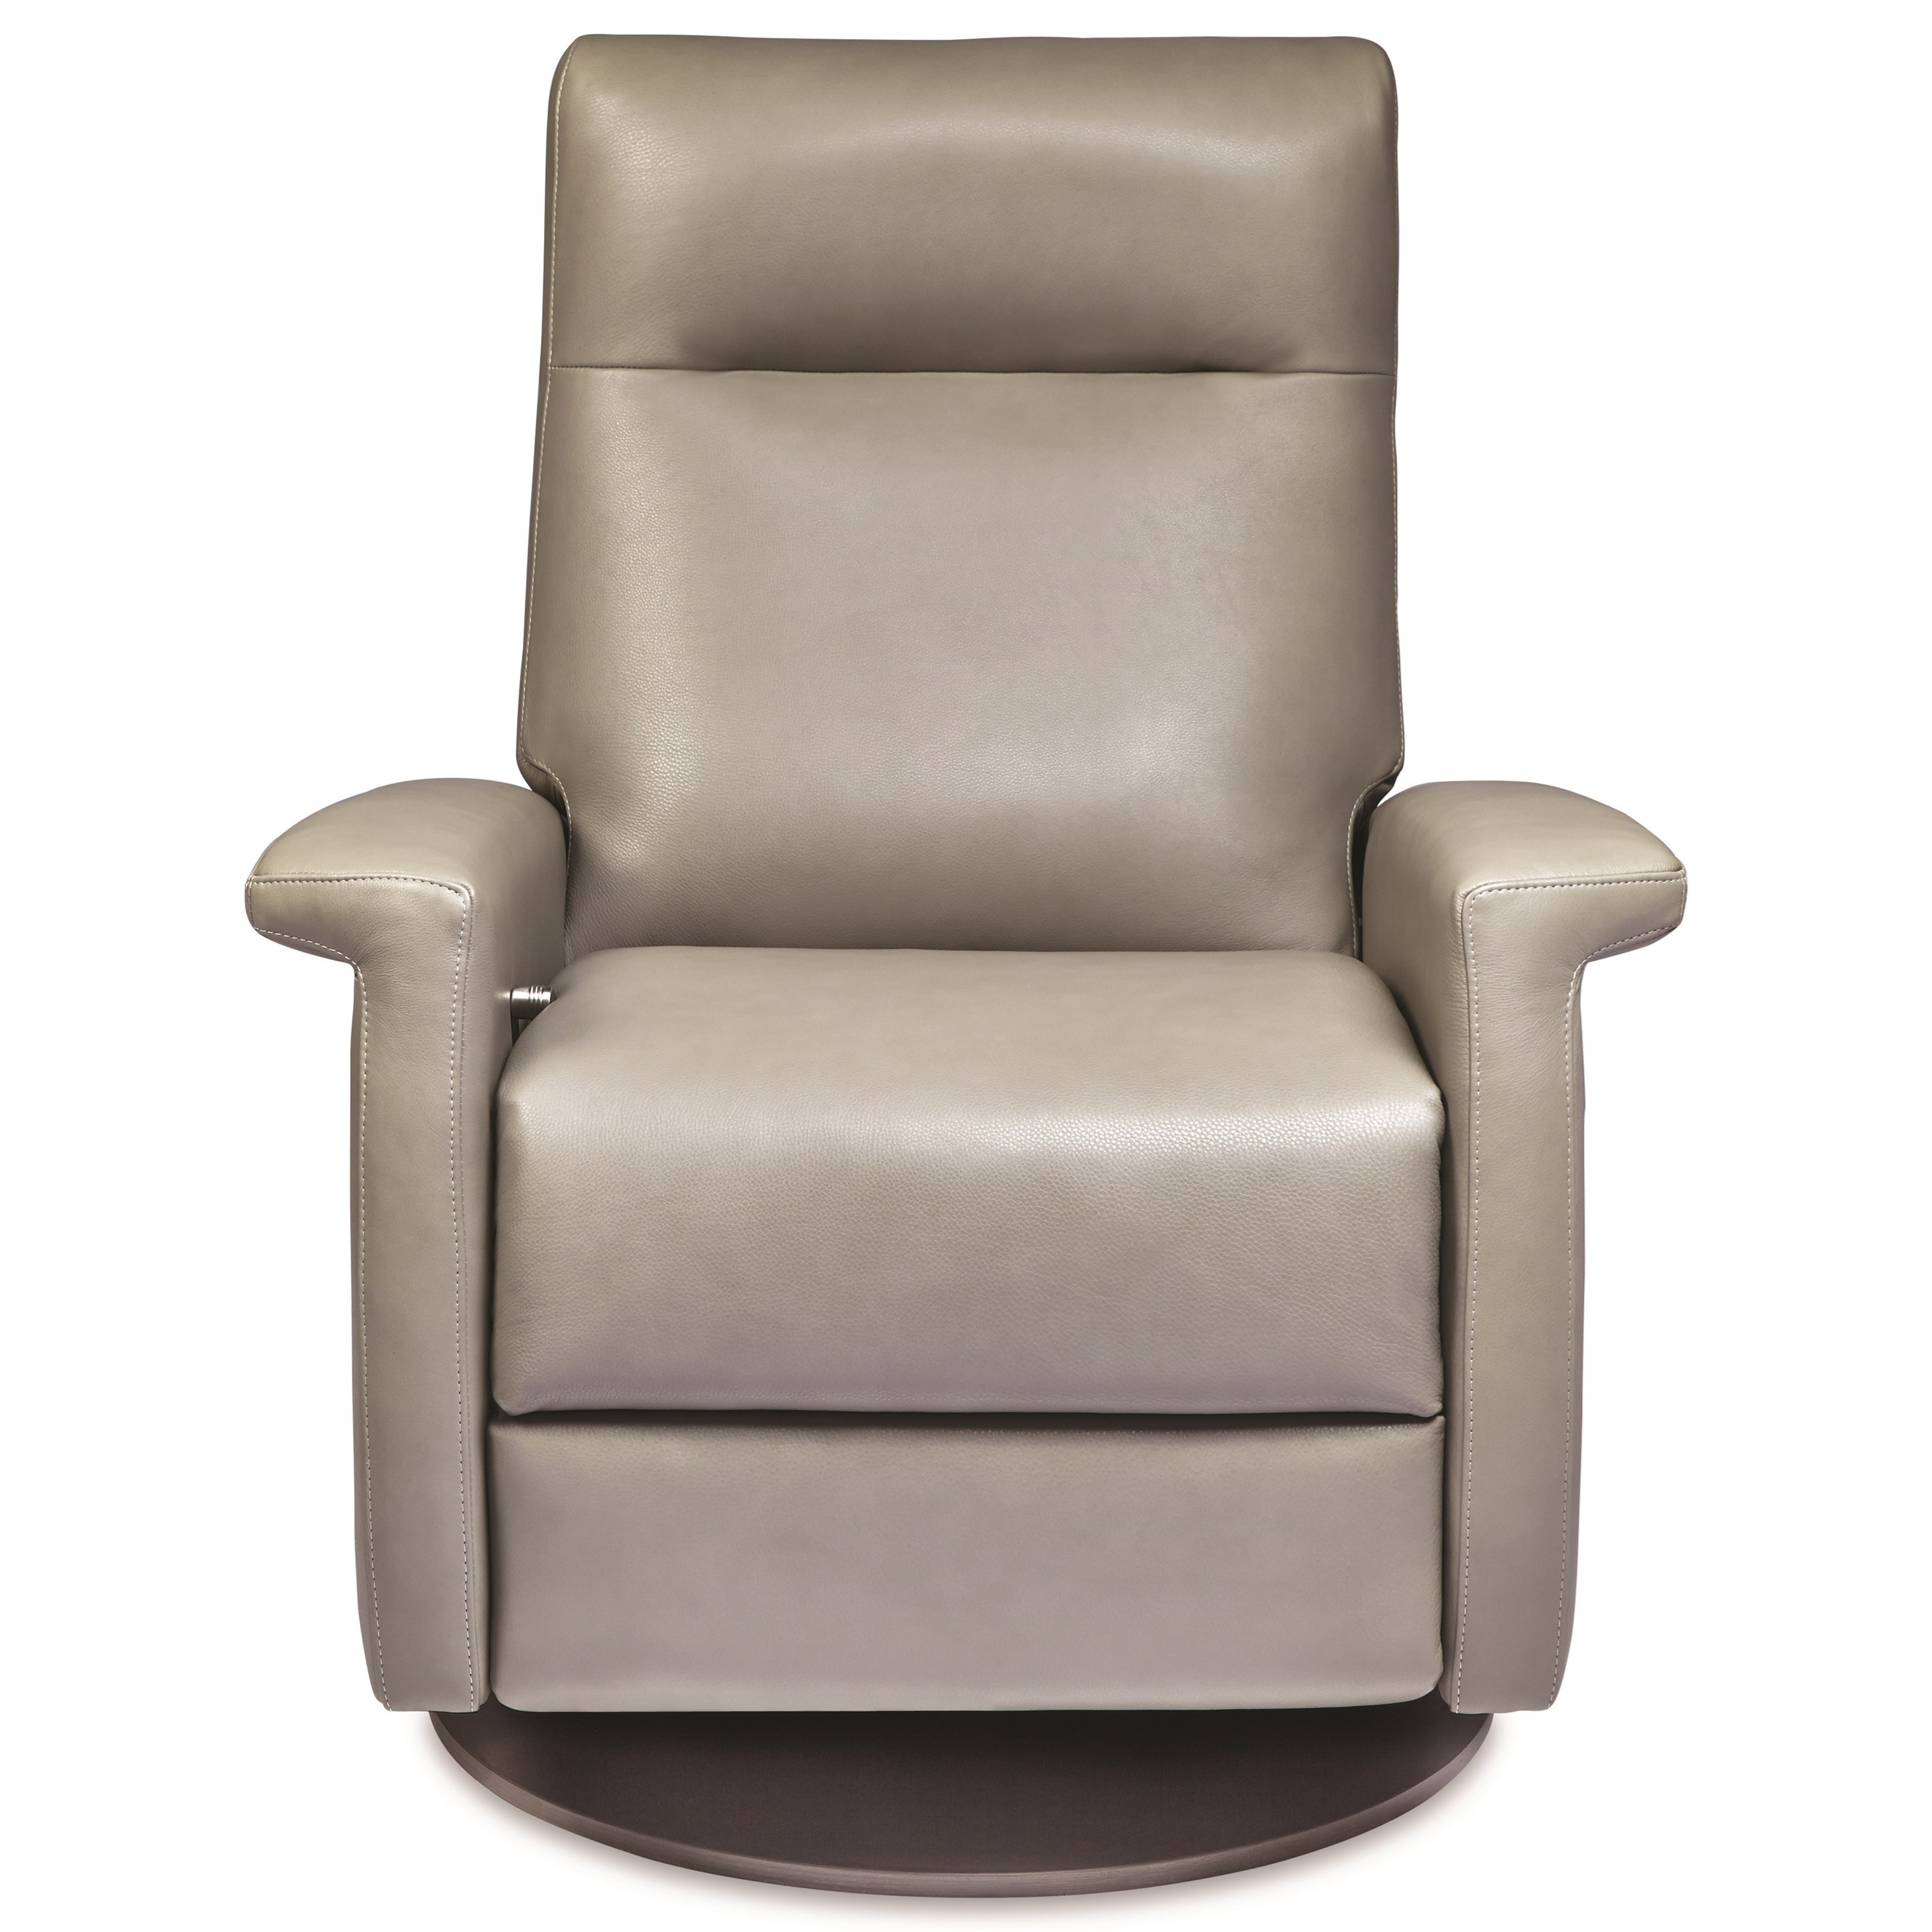 Fallon Comfort Recliner - Large Size by American Leather at Williams & Kay